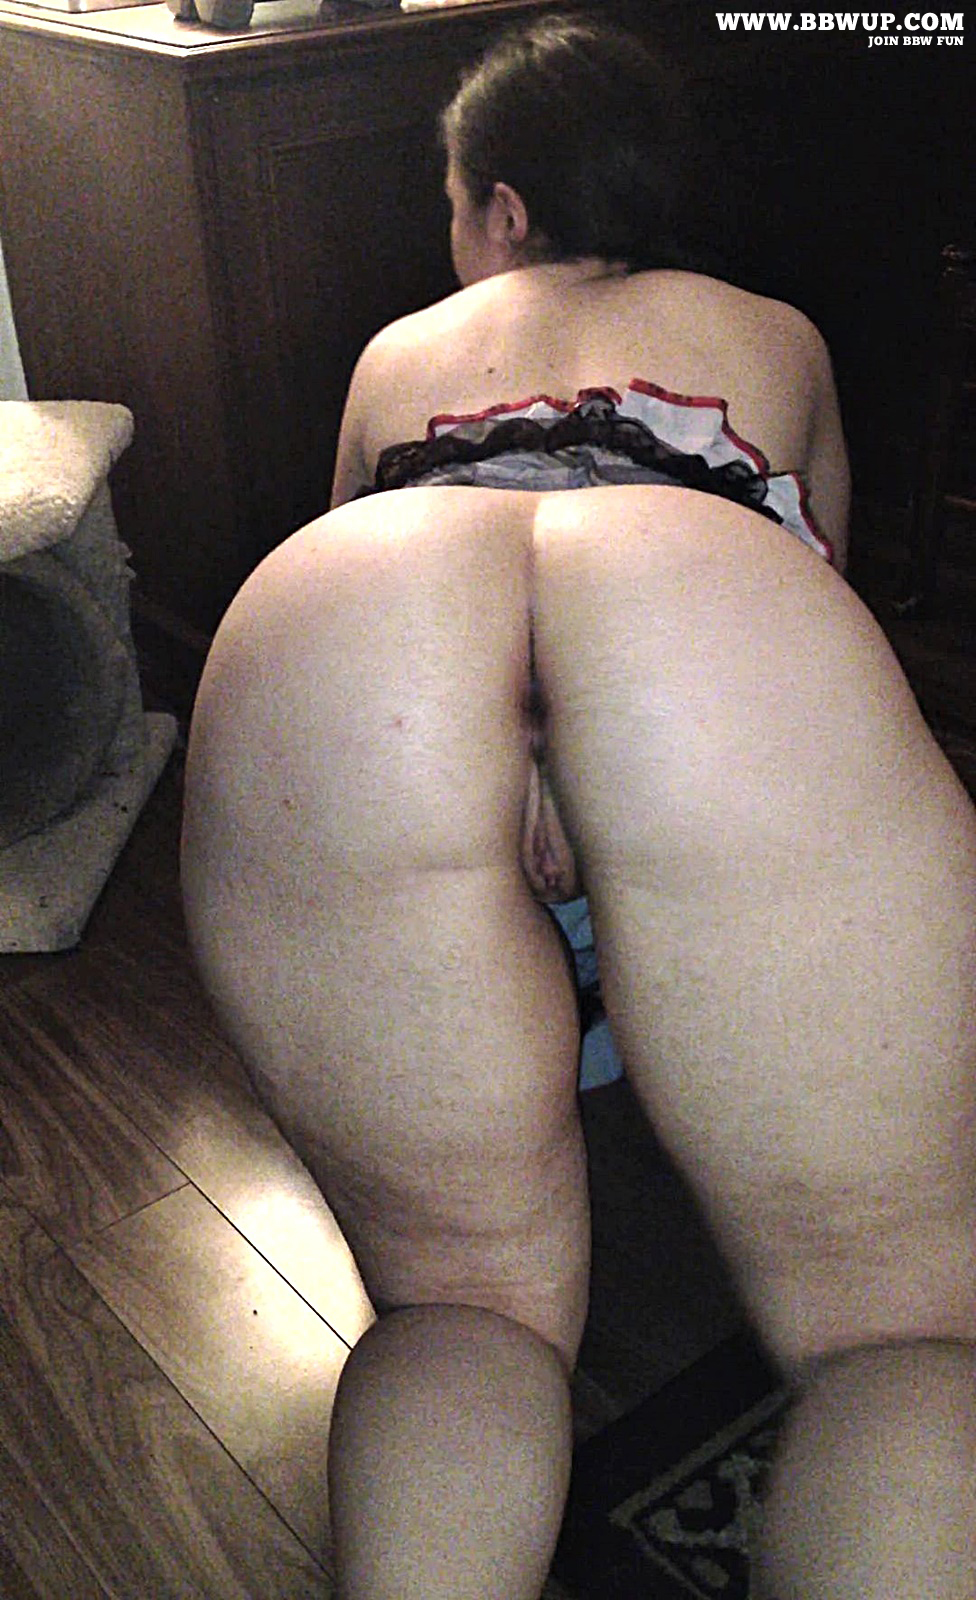 Big butt bbw shower 99 - 4 4